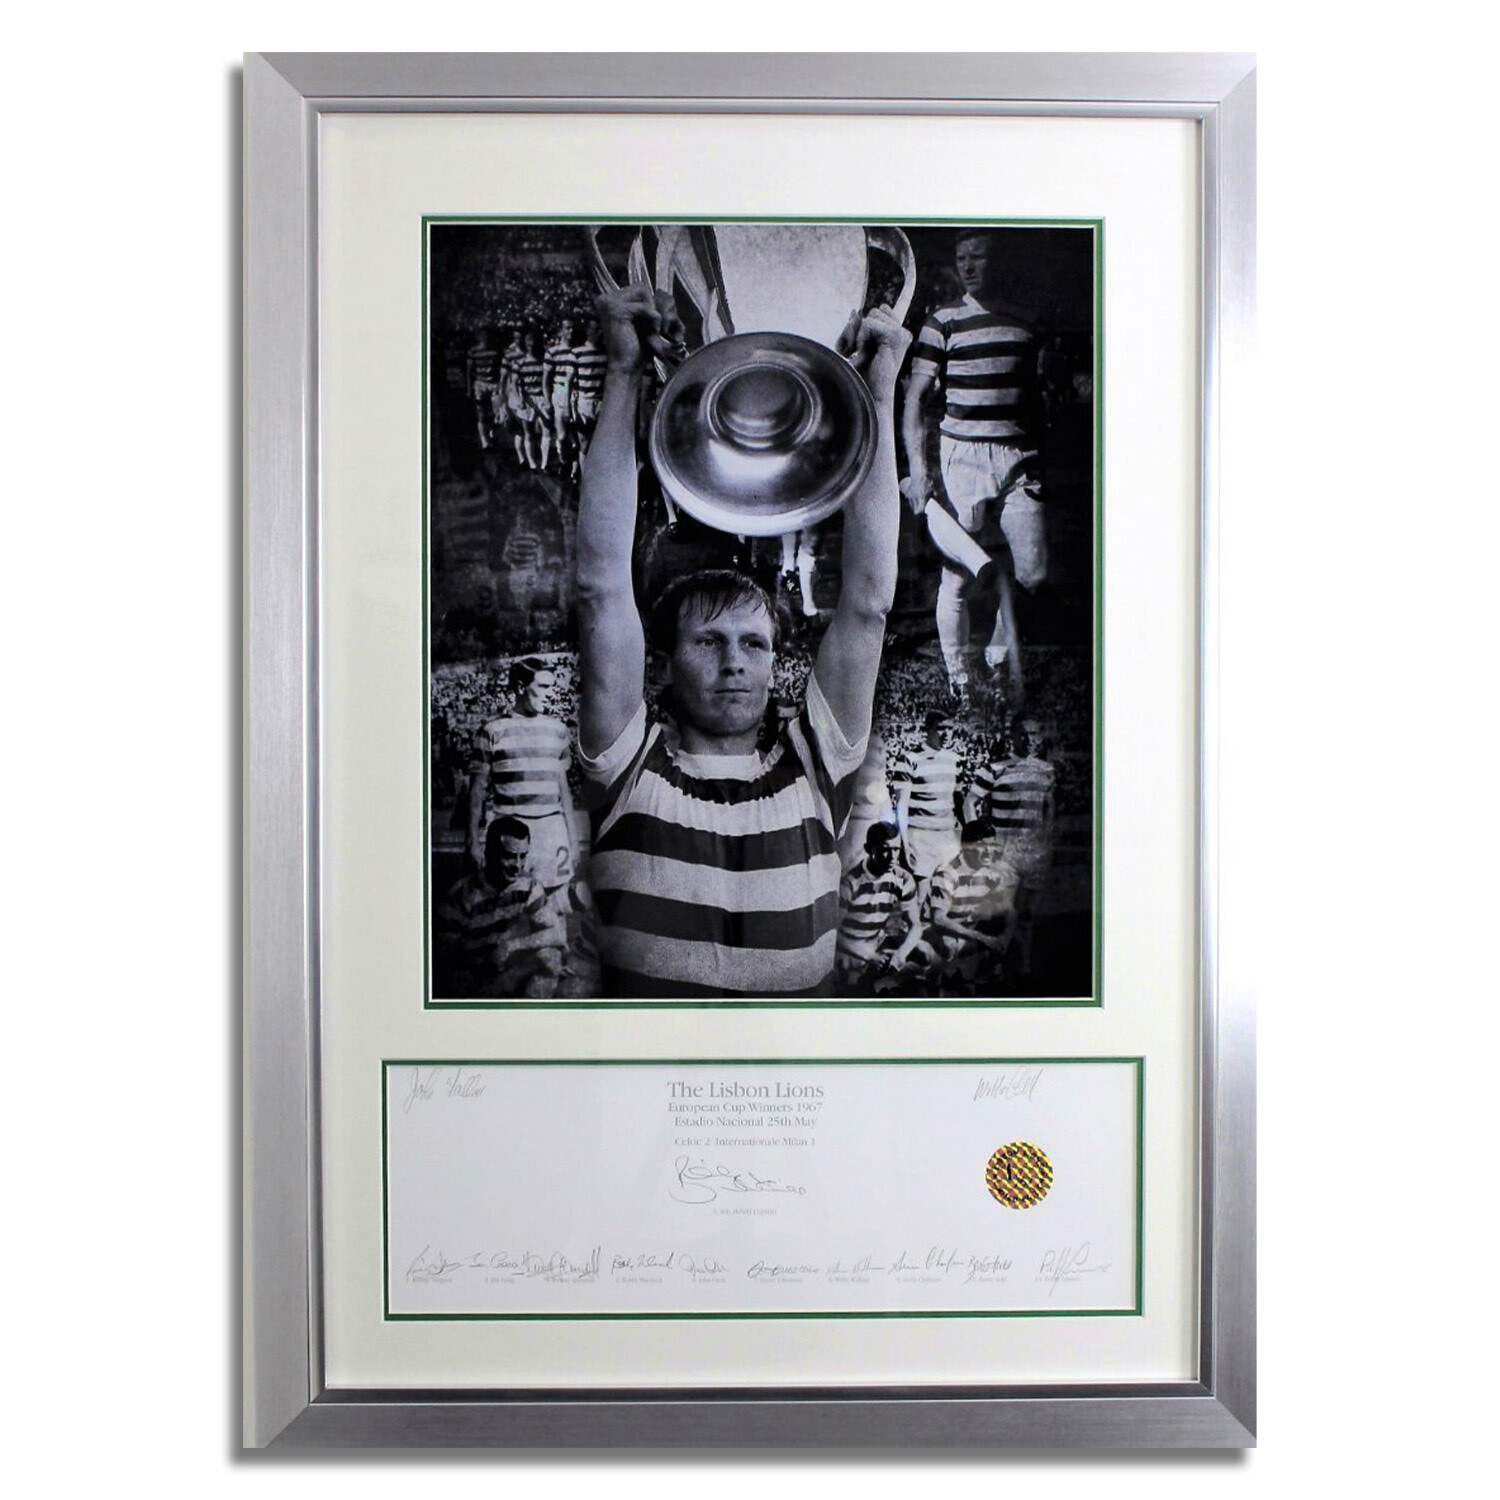 The Lisbon Lions Limited Edition Fully Signed Print